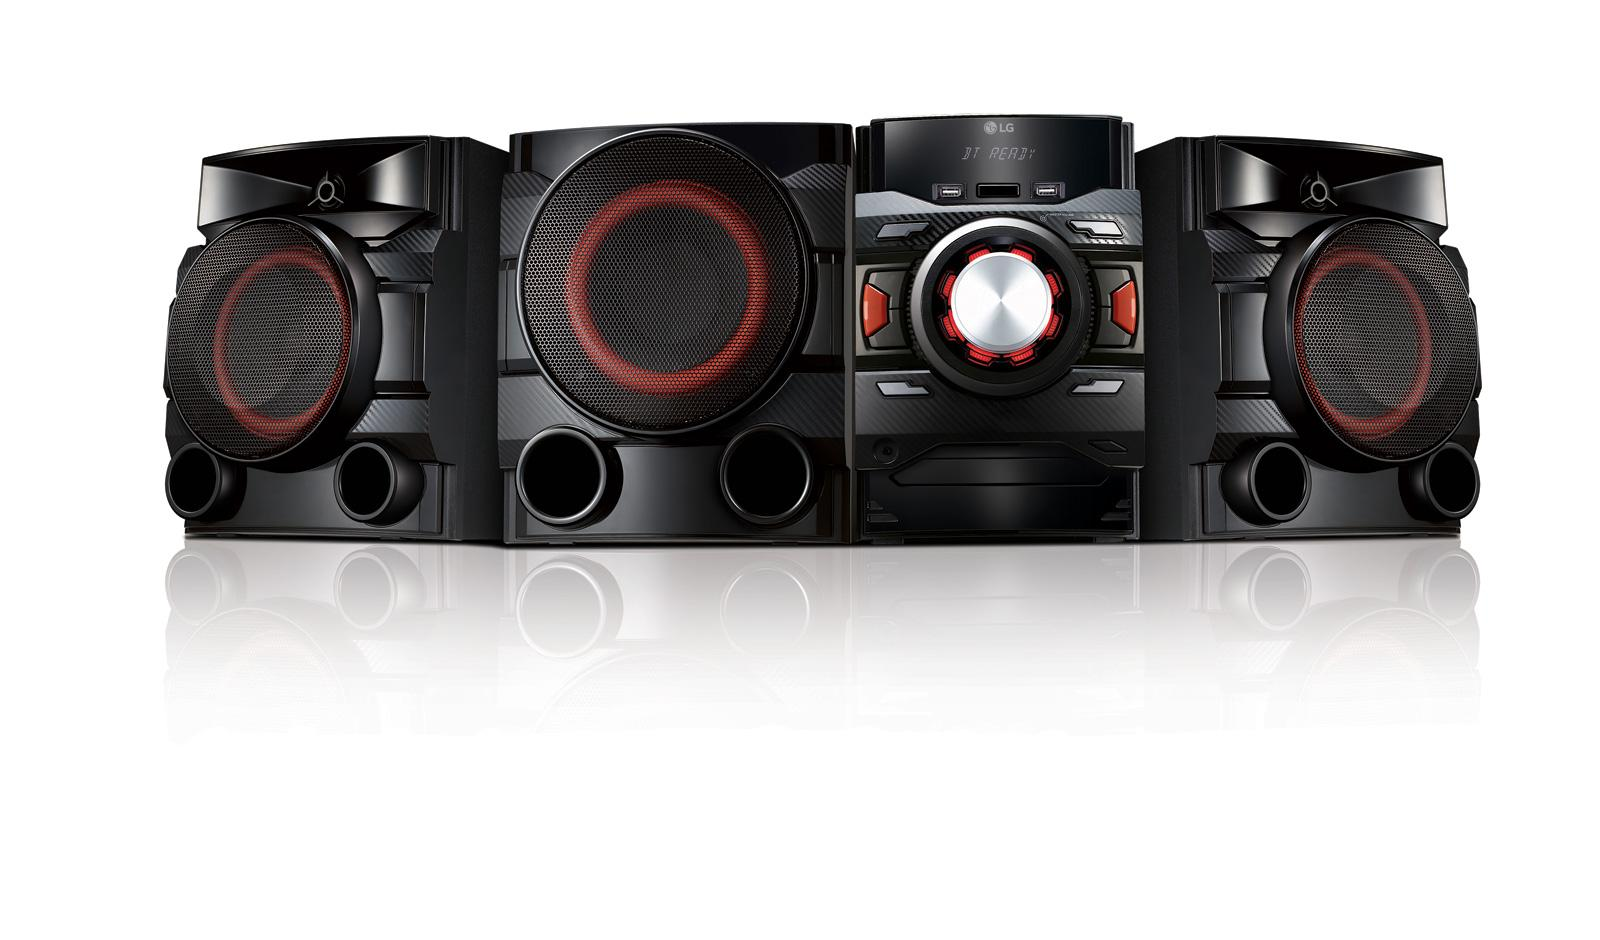 hight resolution of lg cm4550 lg xboom 700w 2 1ch mini shelf system with built in subwoofer and bluetooth lg usa